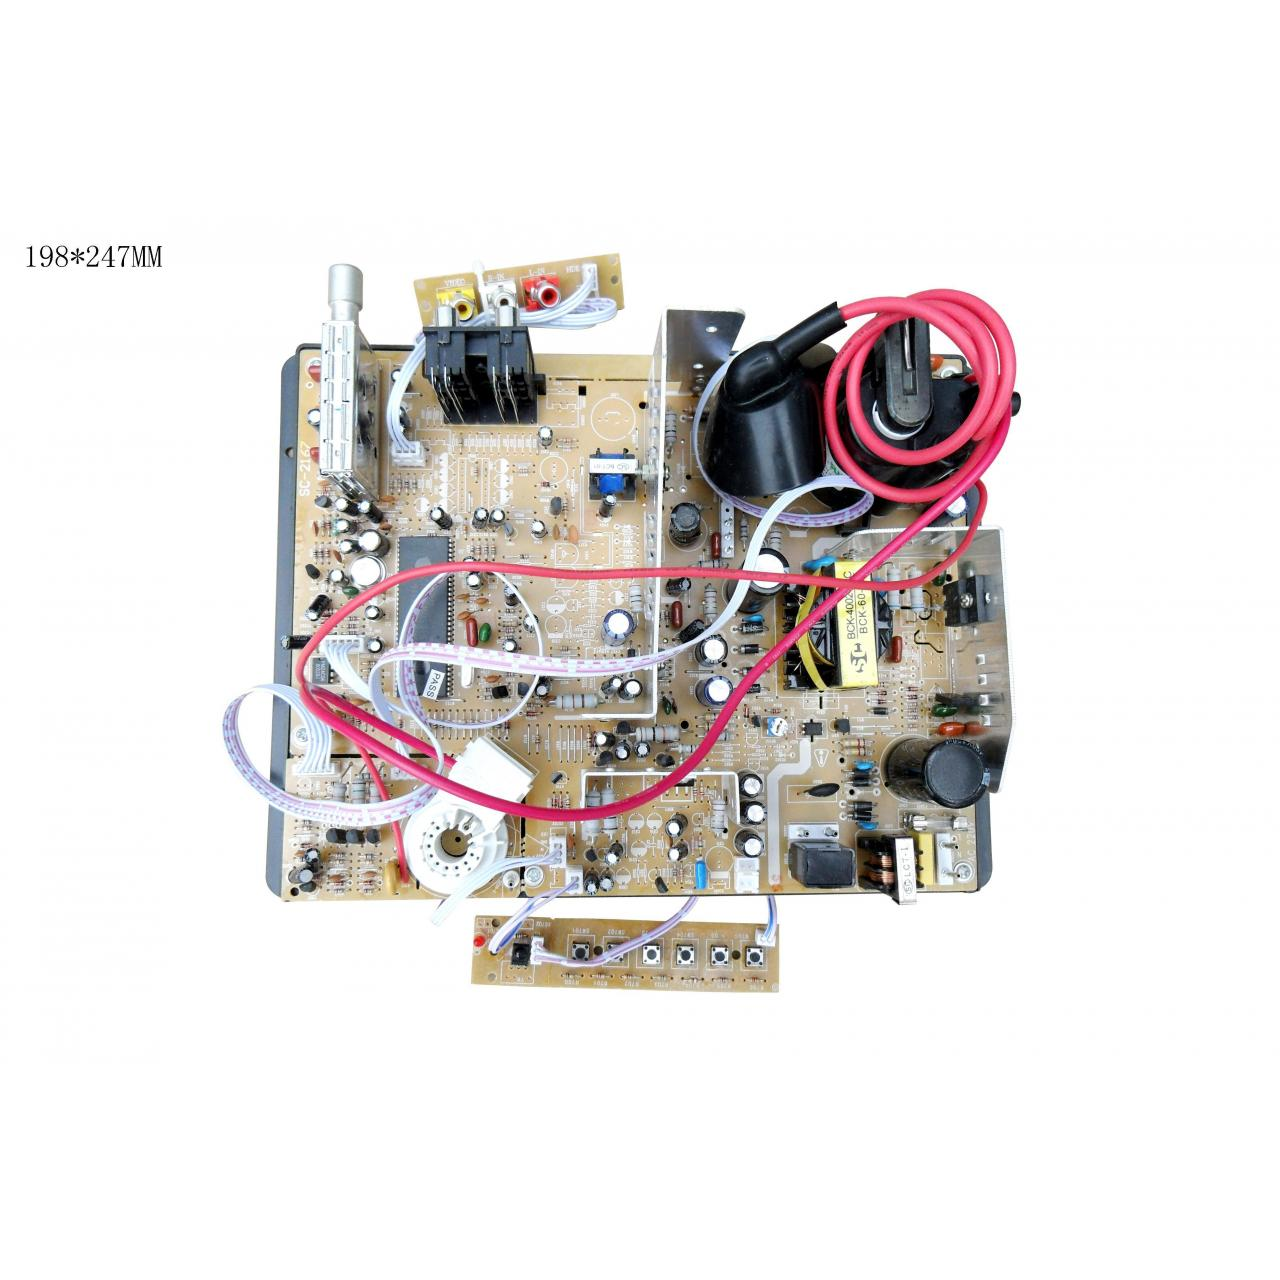 OTHERS PRODUCT 4-TV MAIN BOARD